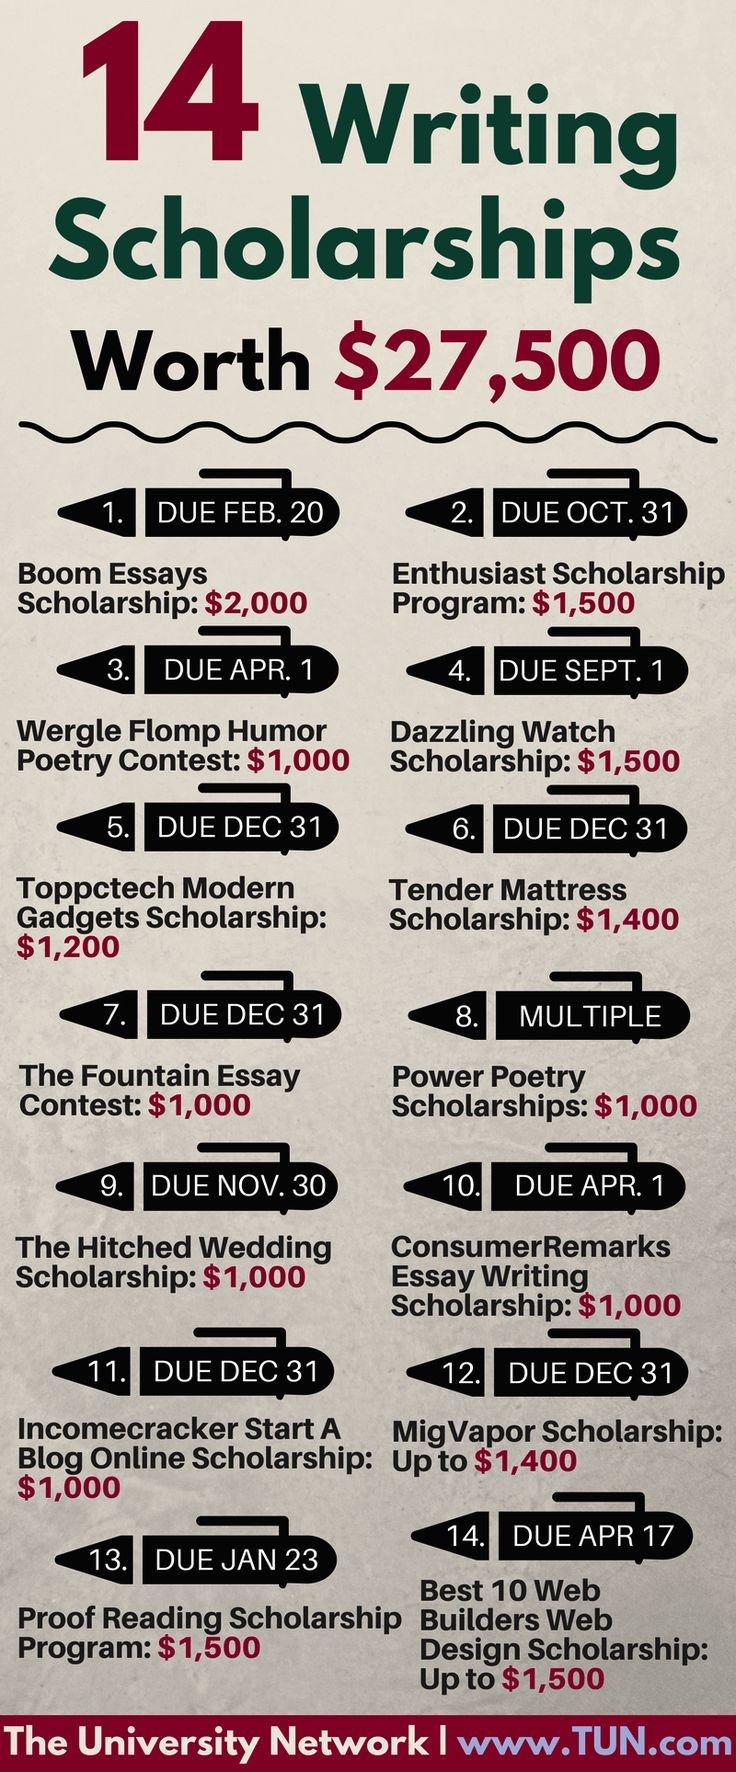 English Literature Essay Questions Five Year Career Plan Essays For Scholarships My Five Year Plan After  Graduation Five Years After And Exams Scholarships Athletic Proposal Essay Template also Business Essay Examples Welcome Writers These Scholarships Require You To Write Essays  Essay On Global Warming In English